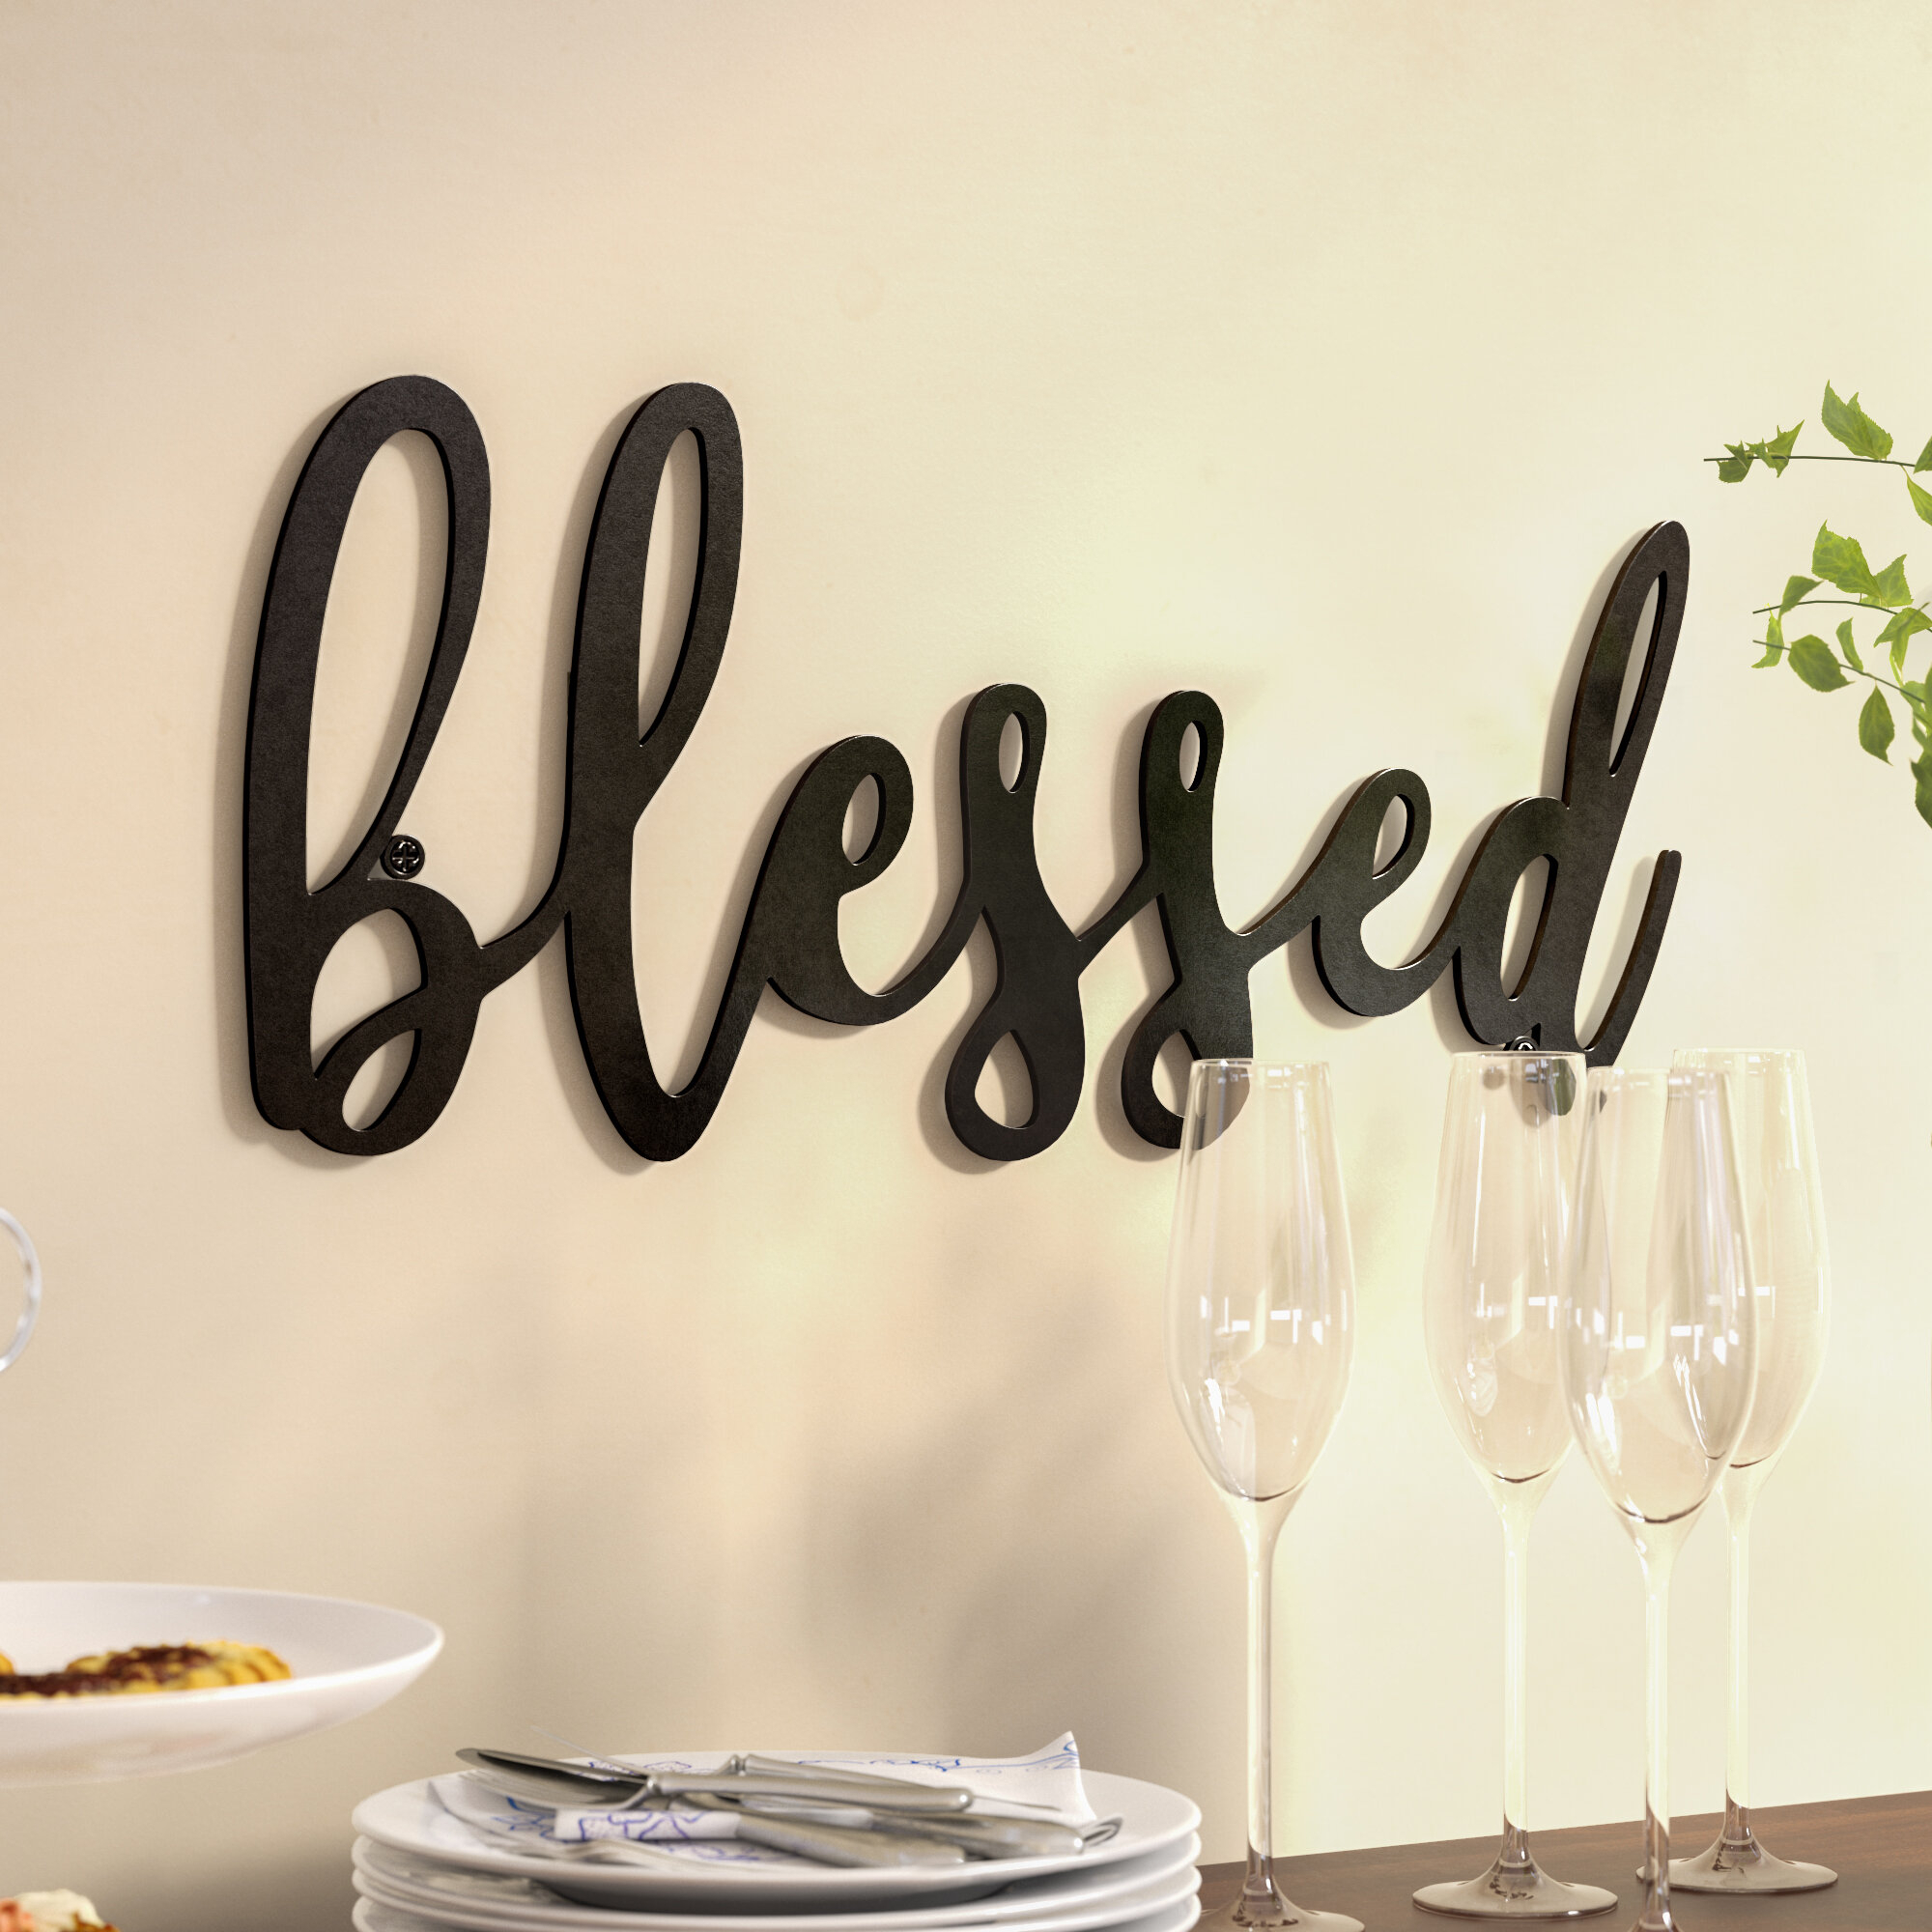 Metal Laundry Room Wall Decor By Winston Porter With Regard To Well Known Blessed Metal Wall Décor (View 6 of 20)